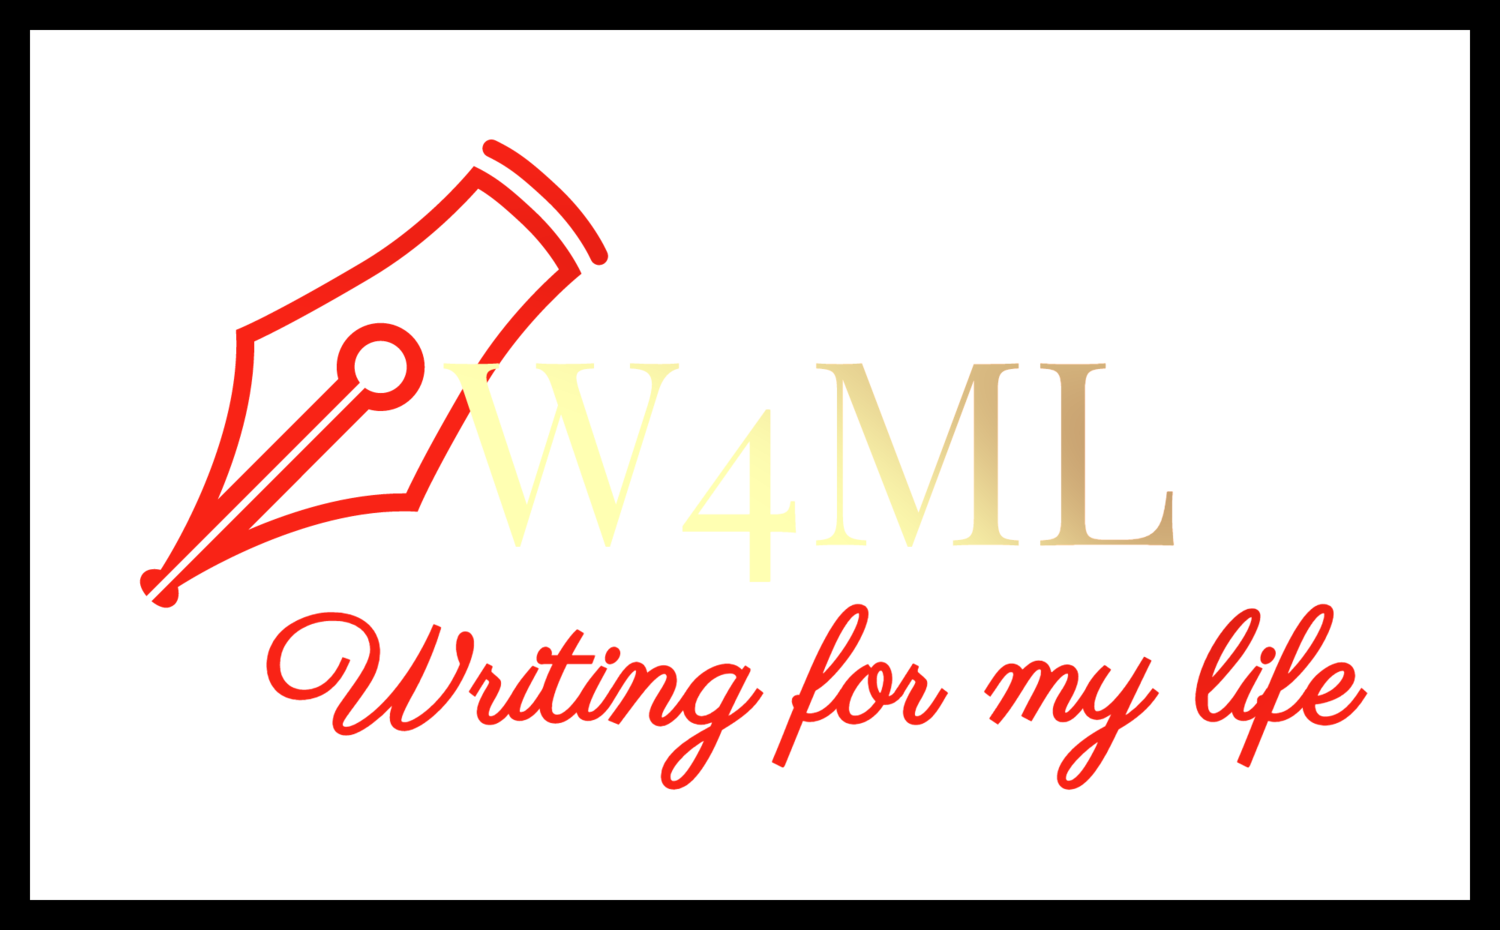 W4ML, Writing4mylife, writing, writers, Spoken word, Poetry, Performance, Duo, Tag-team, Slam poetry, poems, poem, poet,